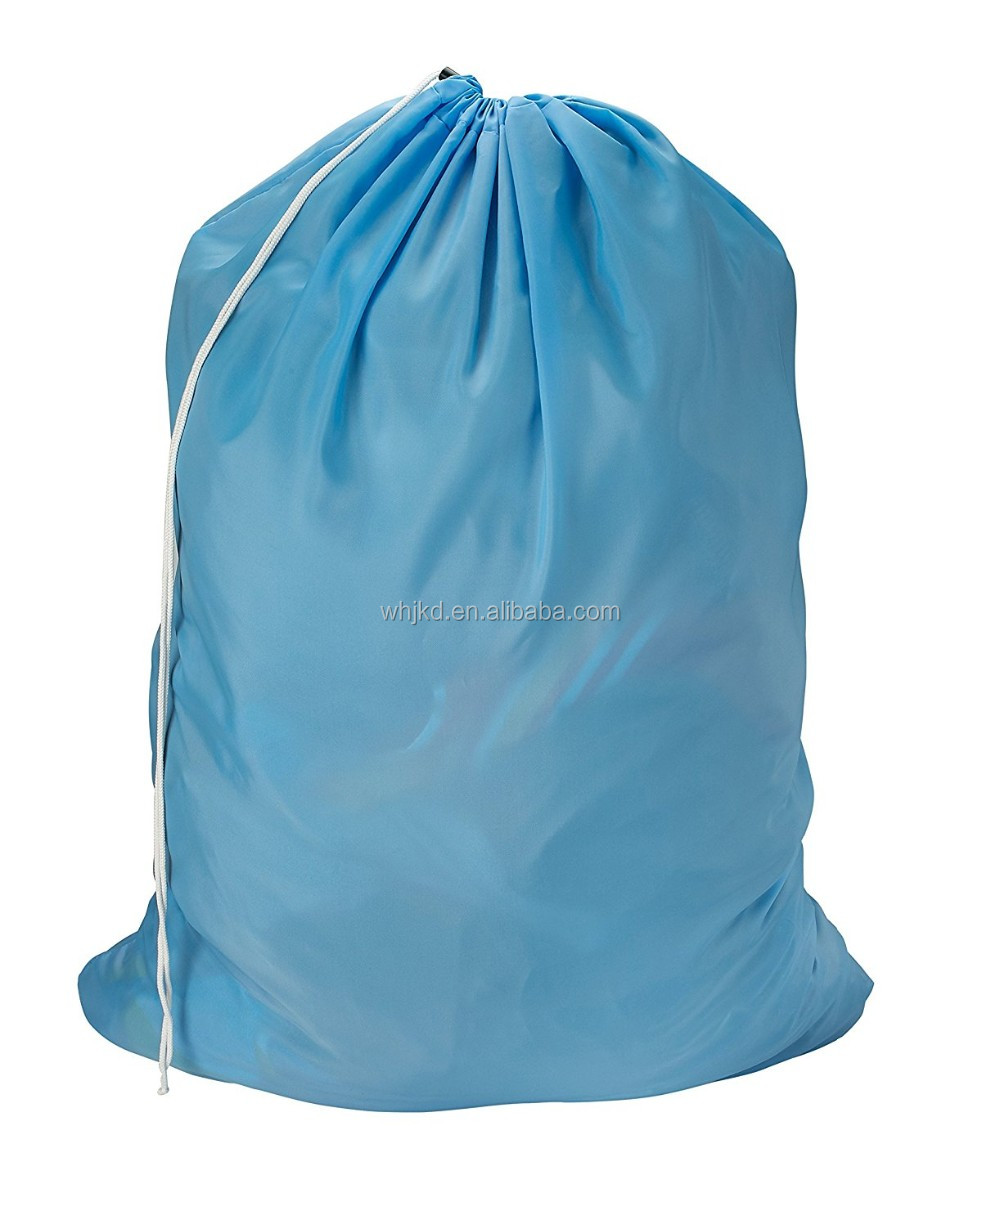 2017 Hot Sales Nylon Drawstring industrial laundry bag